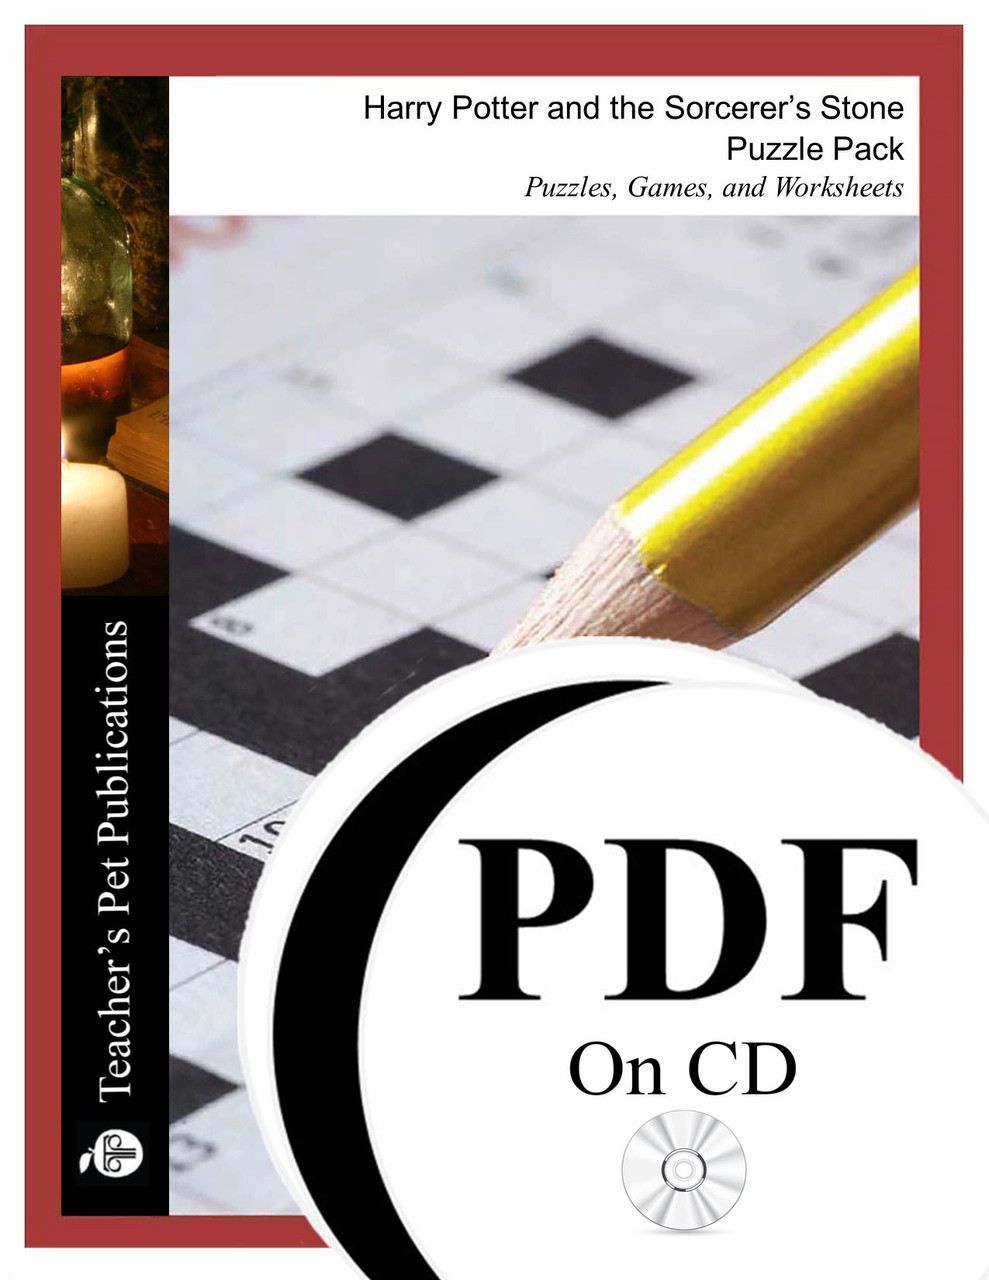 graphic regarding Harry Potter Activities Printable named Harry Potter and the Sorcerers Stone Puzzle Pack Worksheets, Things to do, Online games (PDF upon CD)